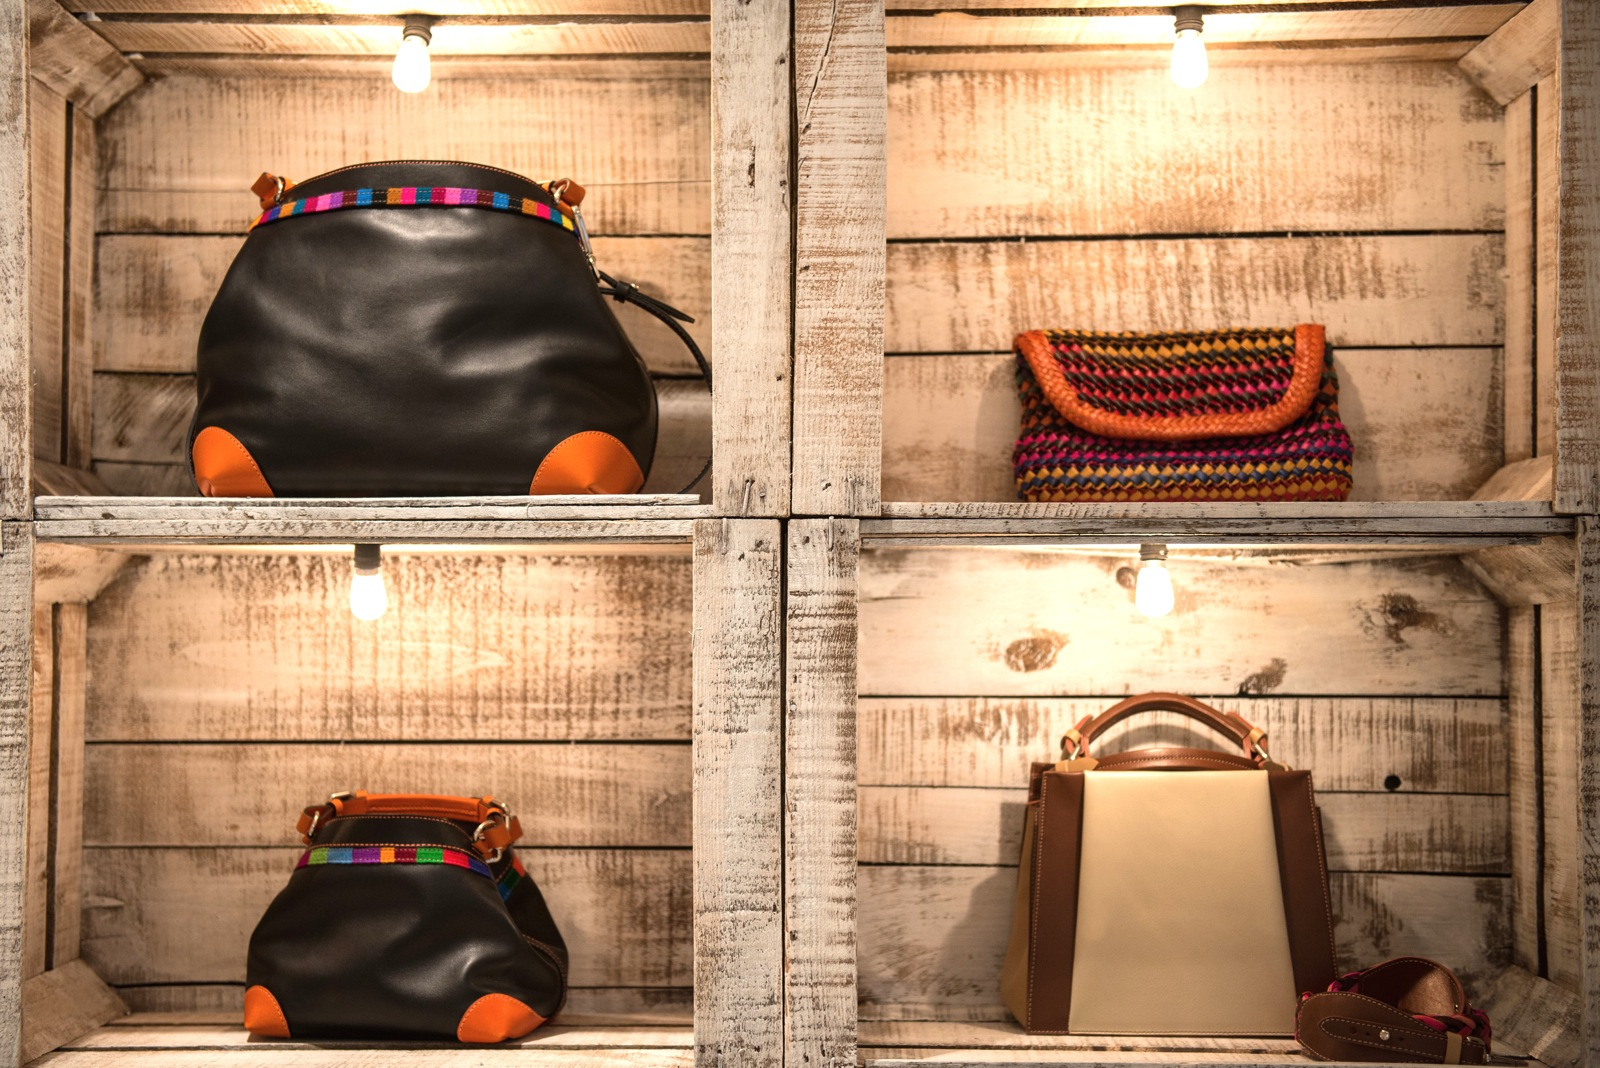 Caroline de Marchi Boutique: Pick up one of these unique luxury Parisian handbags